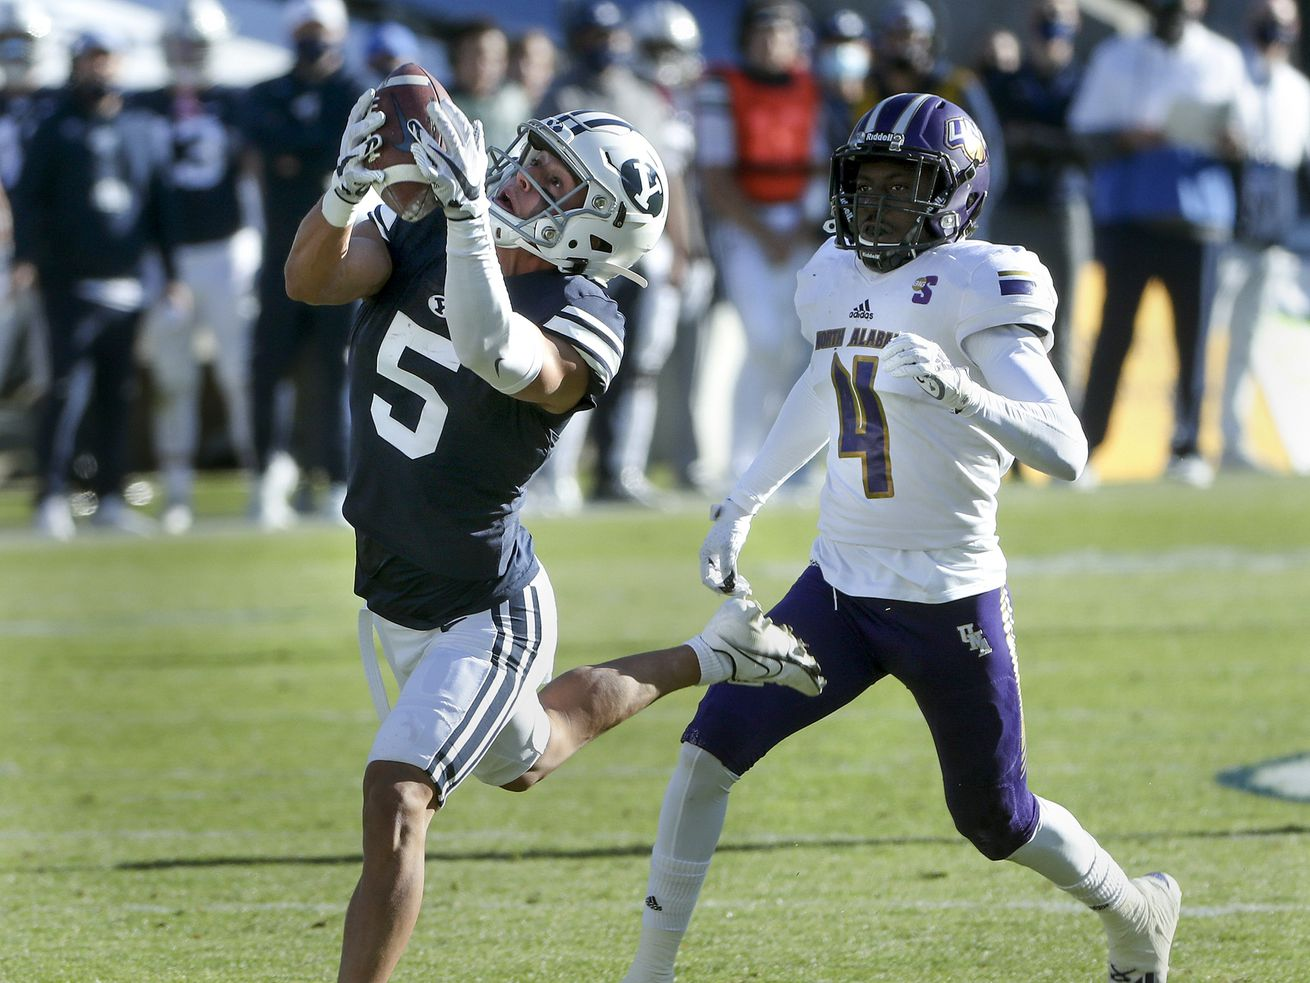 BYU's offense was brilliant, while its defense left room for nitpicking in 66-14 waxing of North Alabama